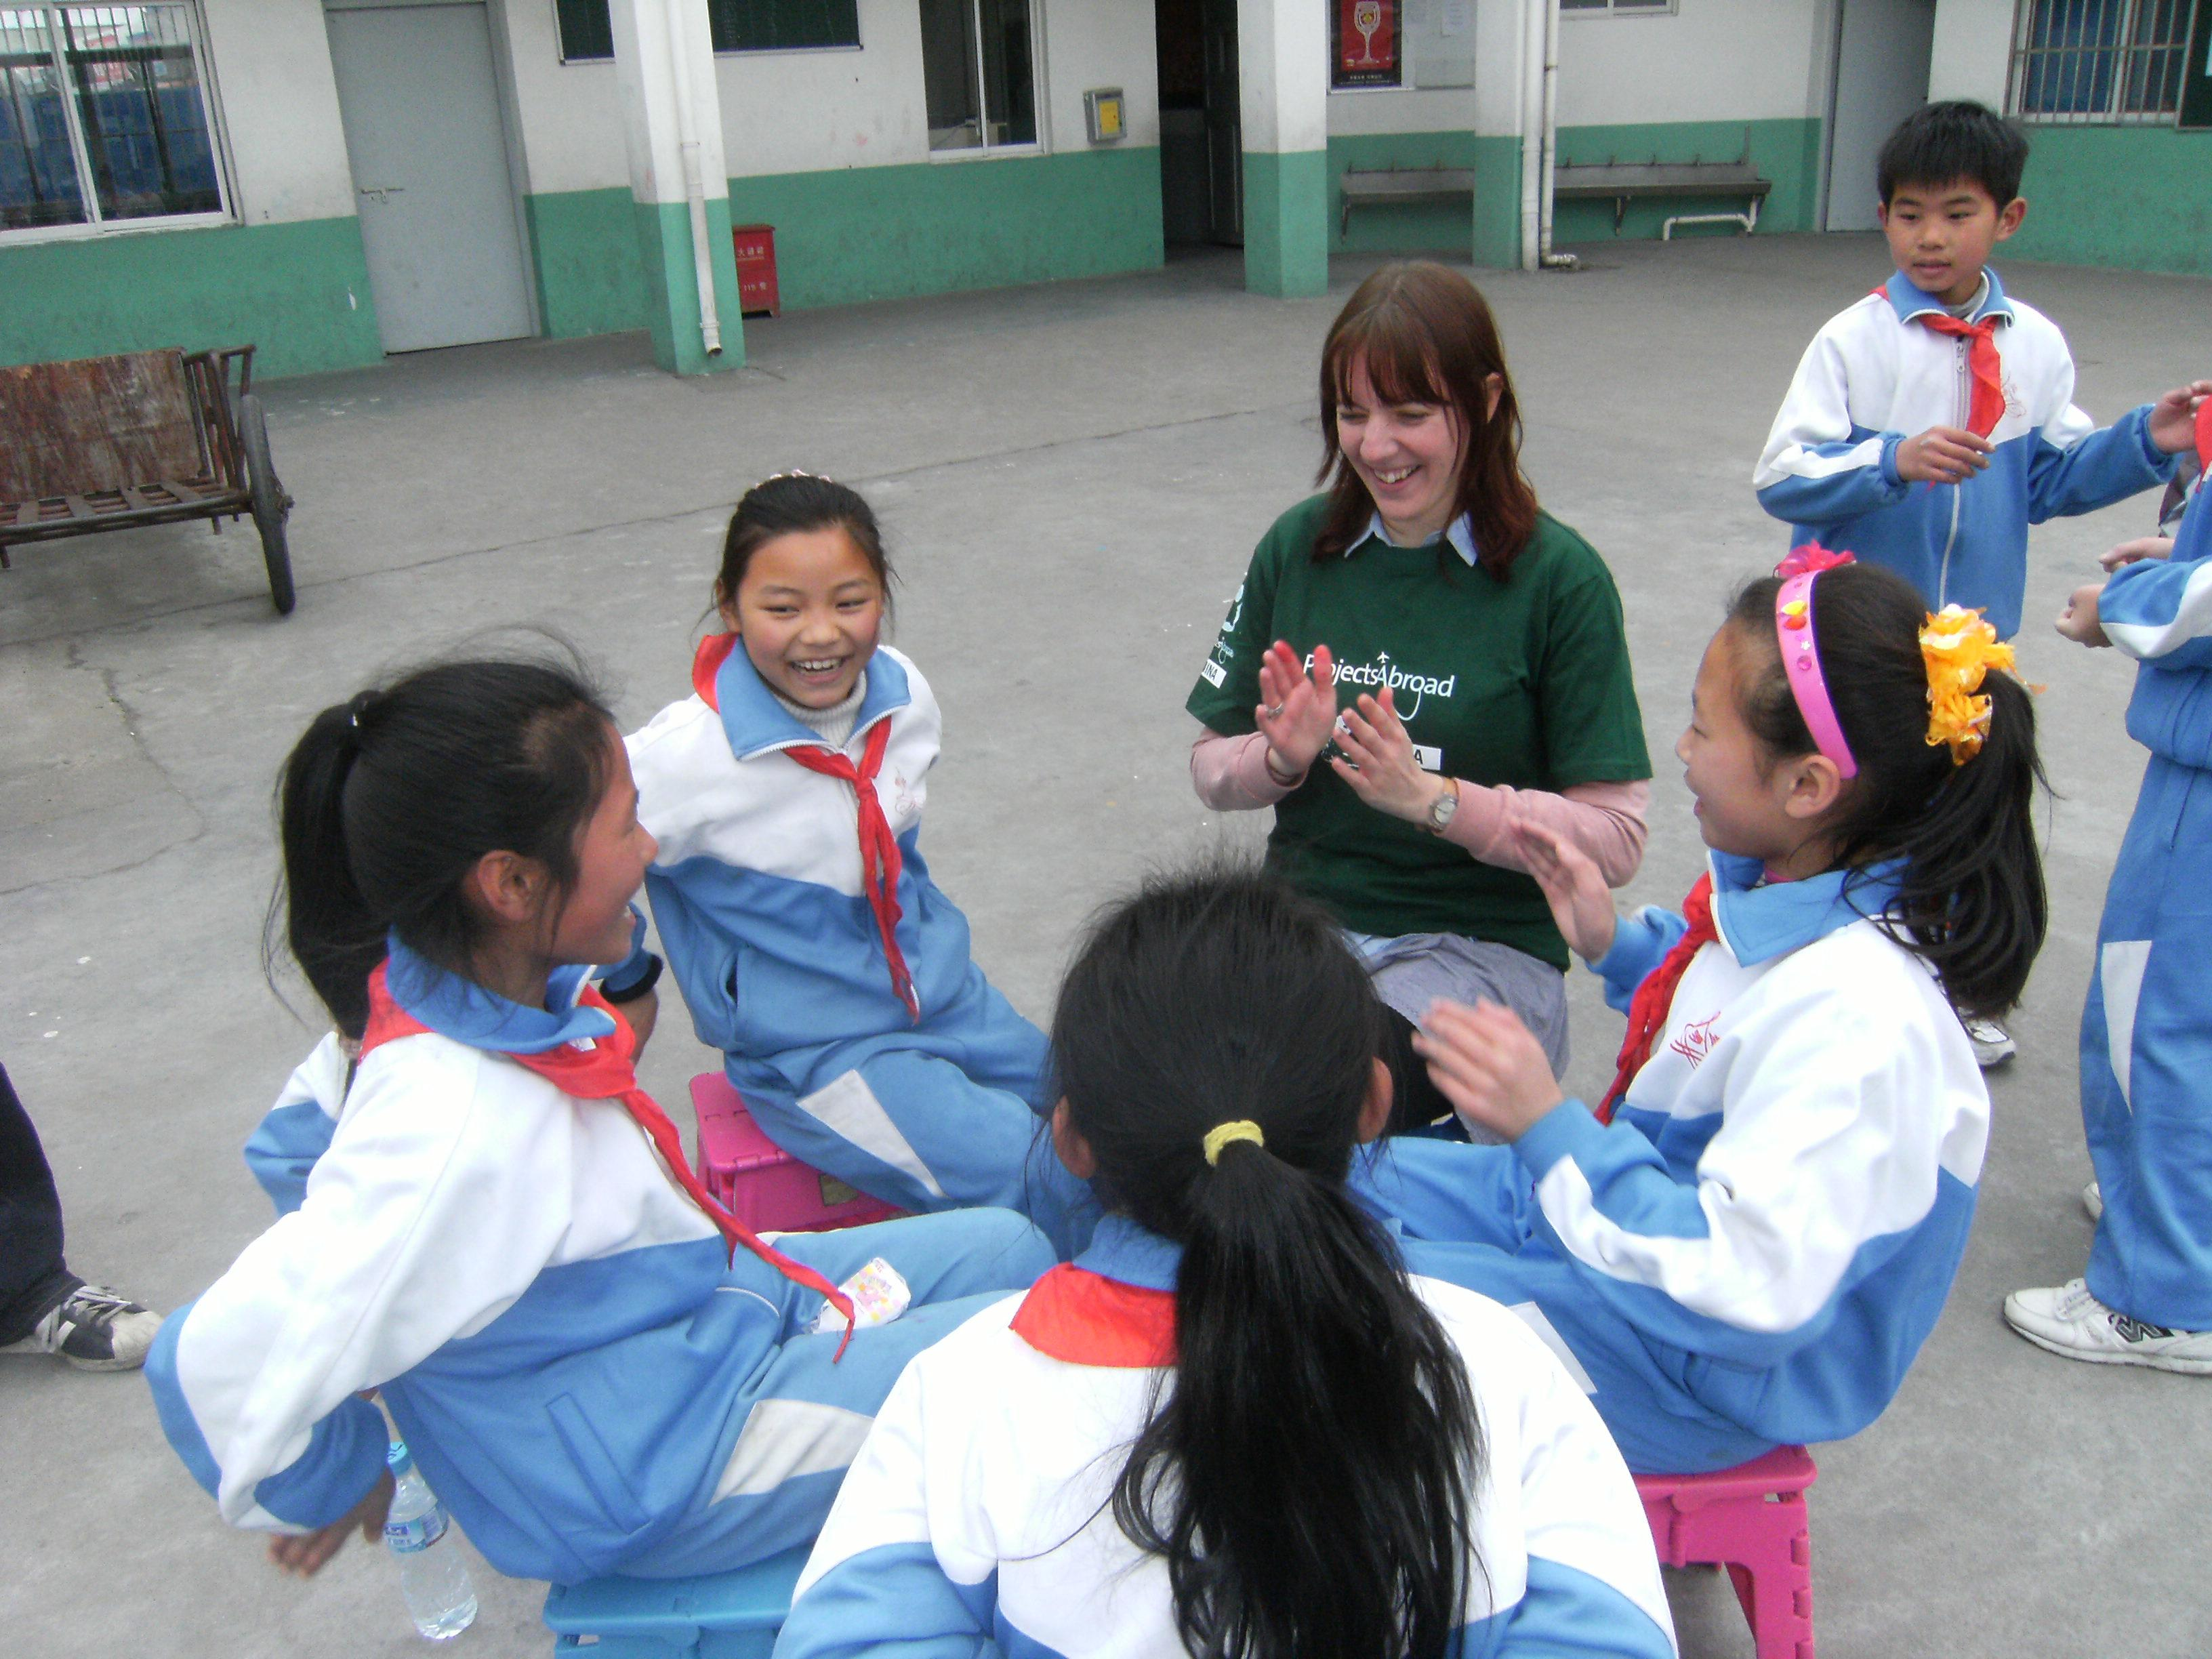 Projects Abroad volunteer with children in China claps with children outside her kindergarten placement.